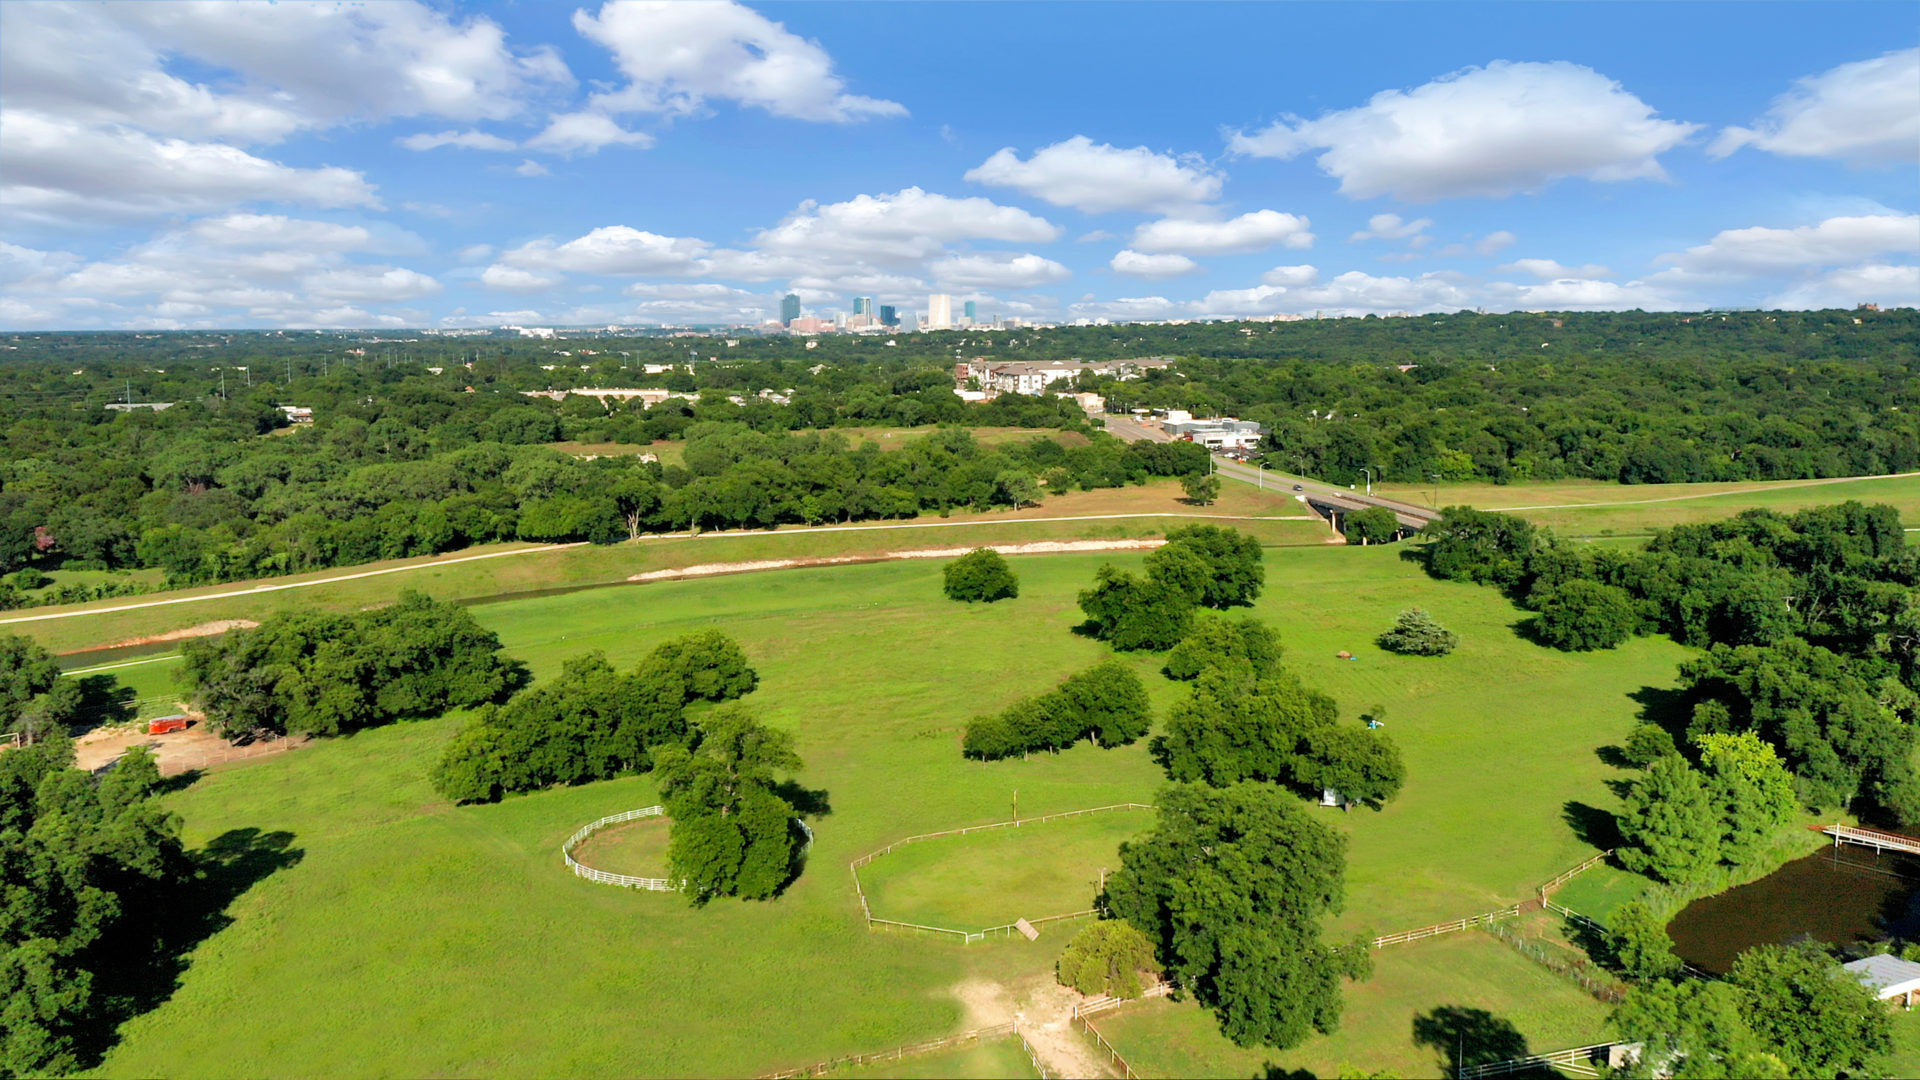 Aerial view of a green farm with multiple trees adjacent to a river and road with a view of downtown Fort Worth